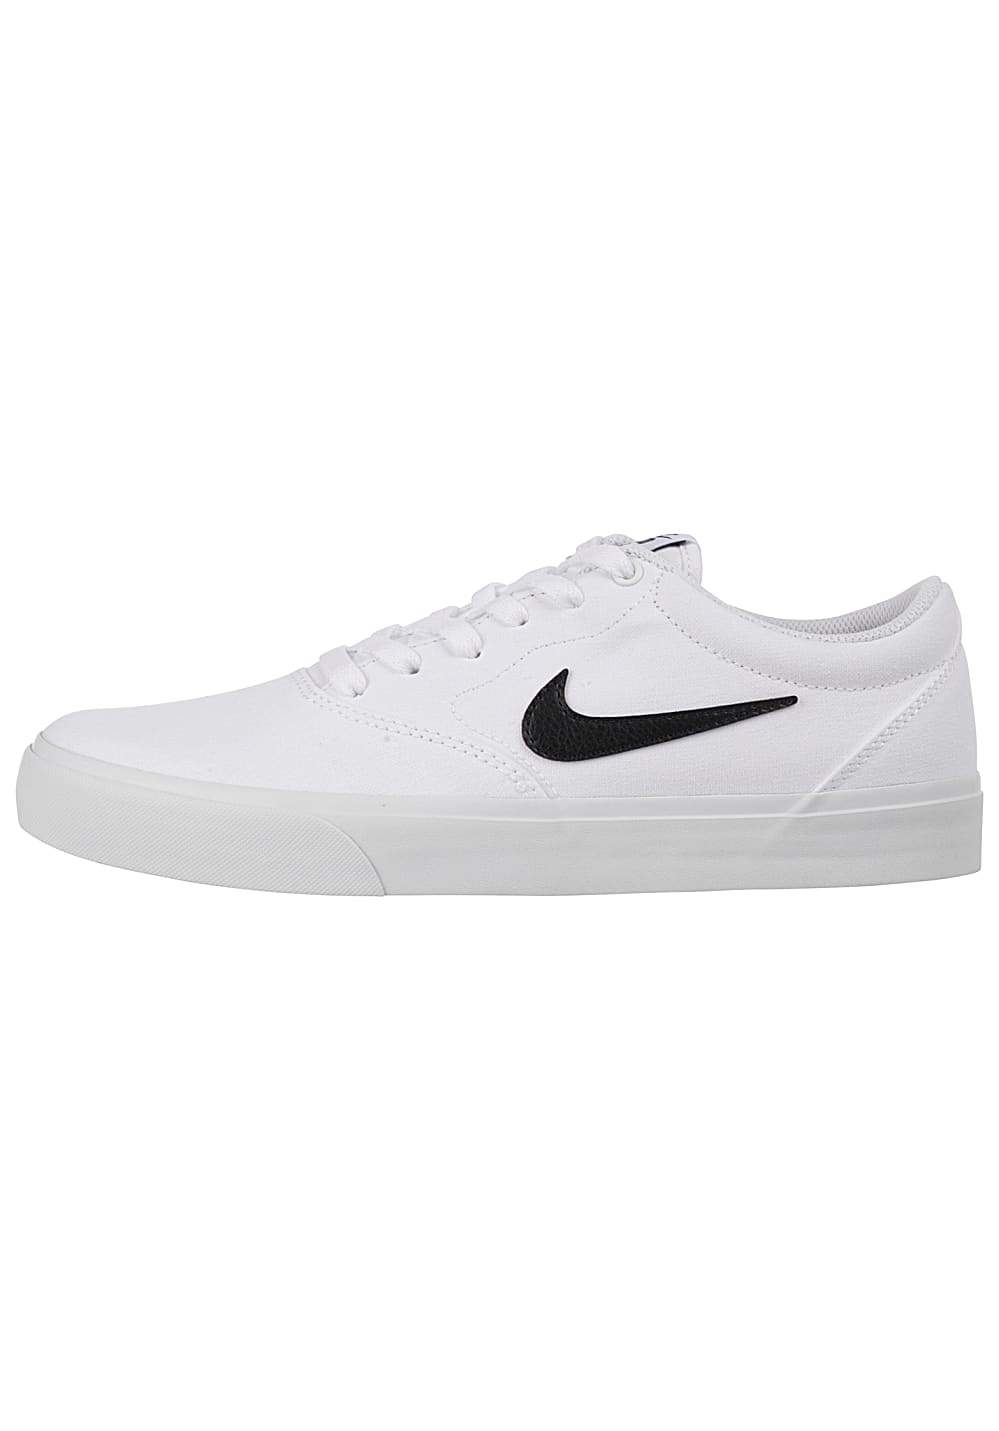 NIKE SB Charge Cnvs Sneaker für Herren Weiß Planet Sports